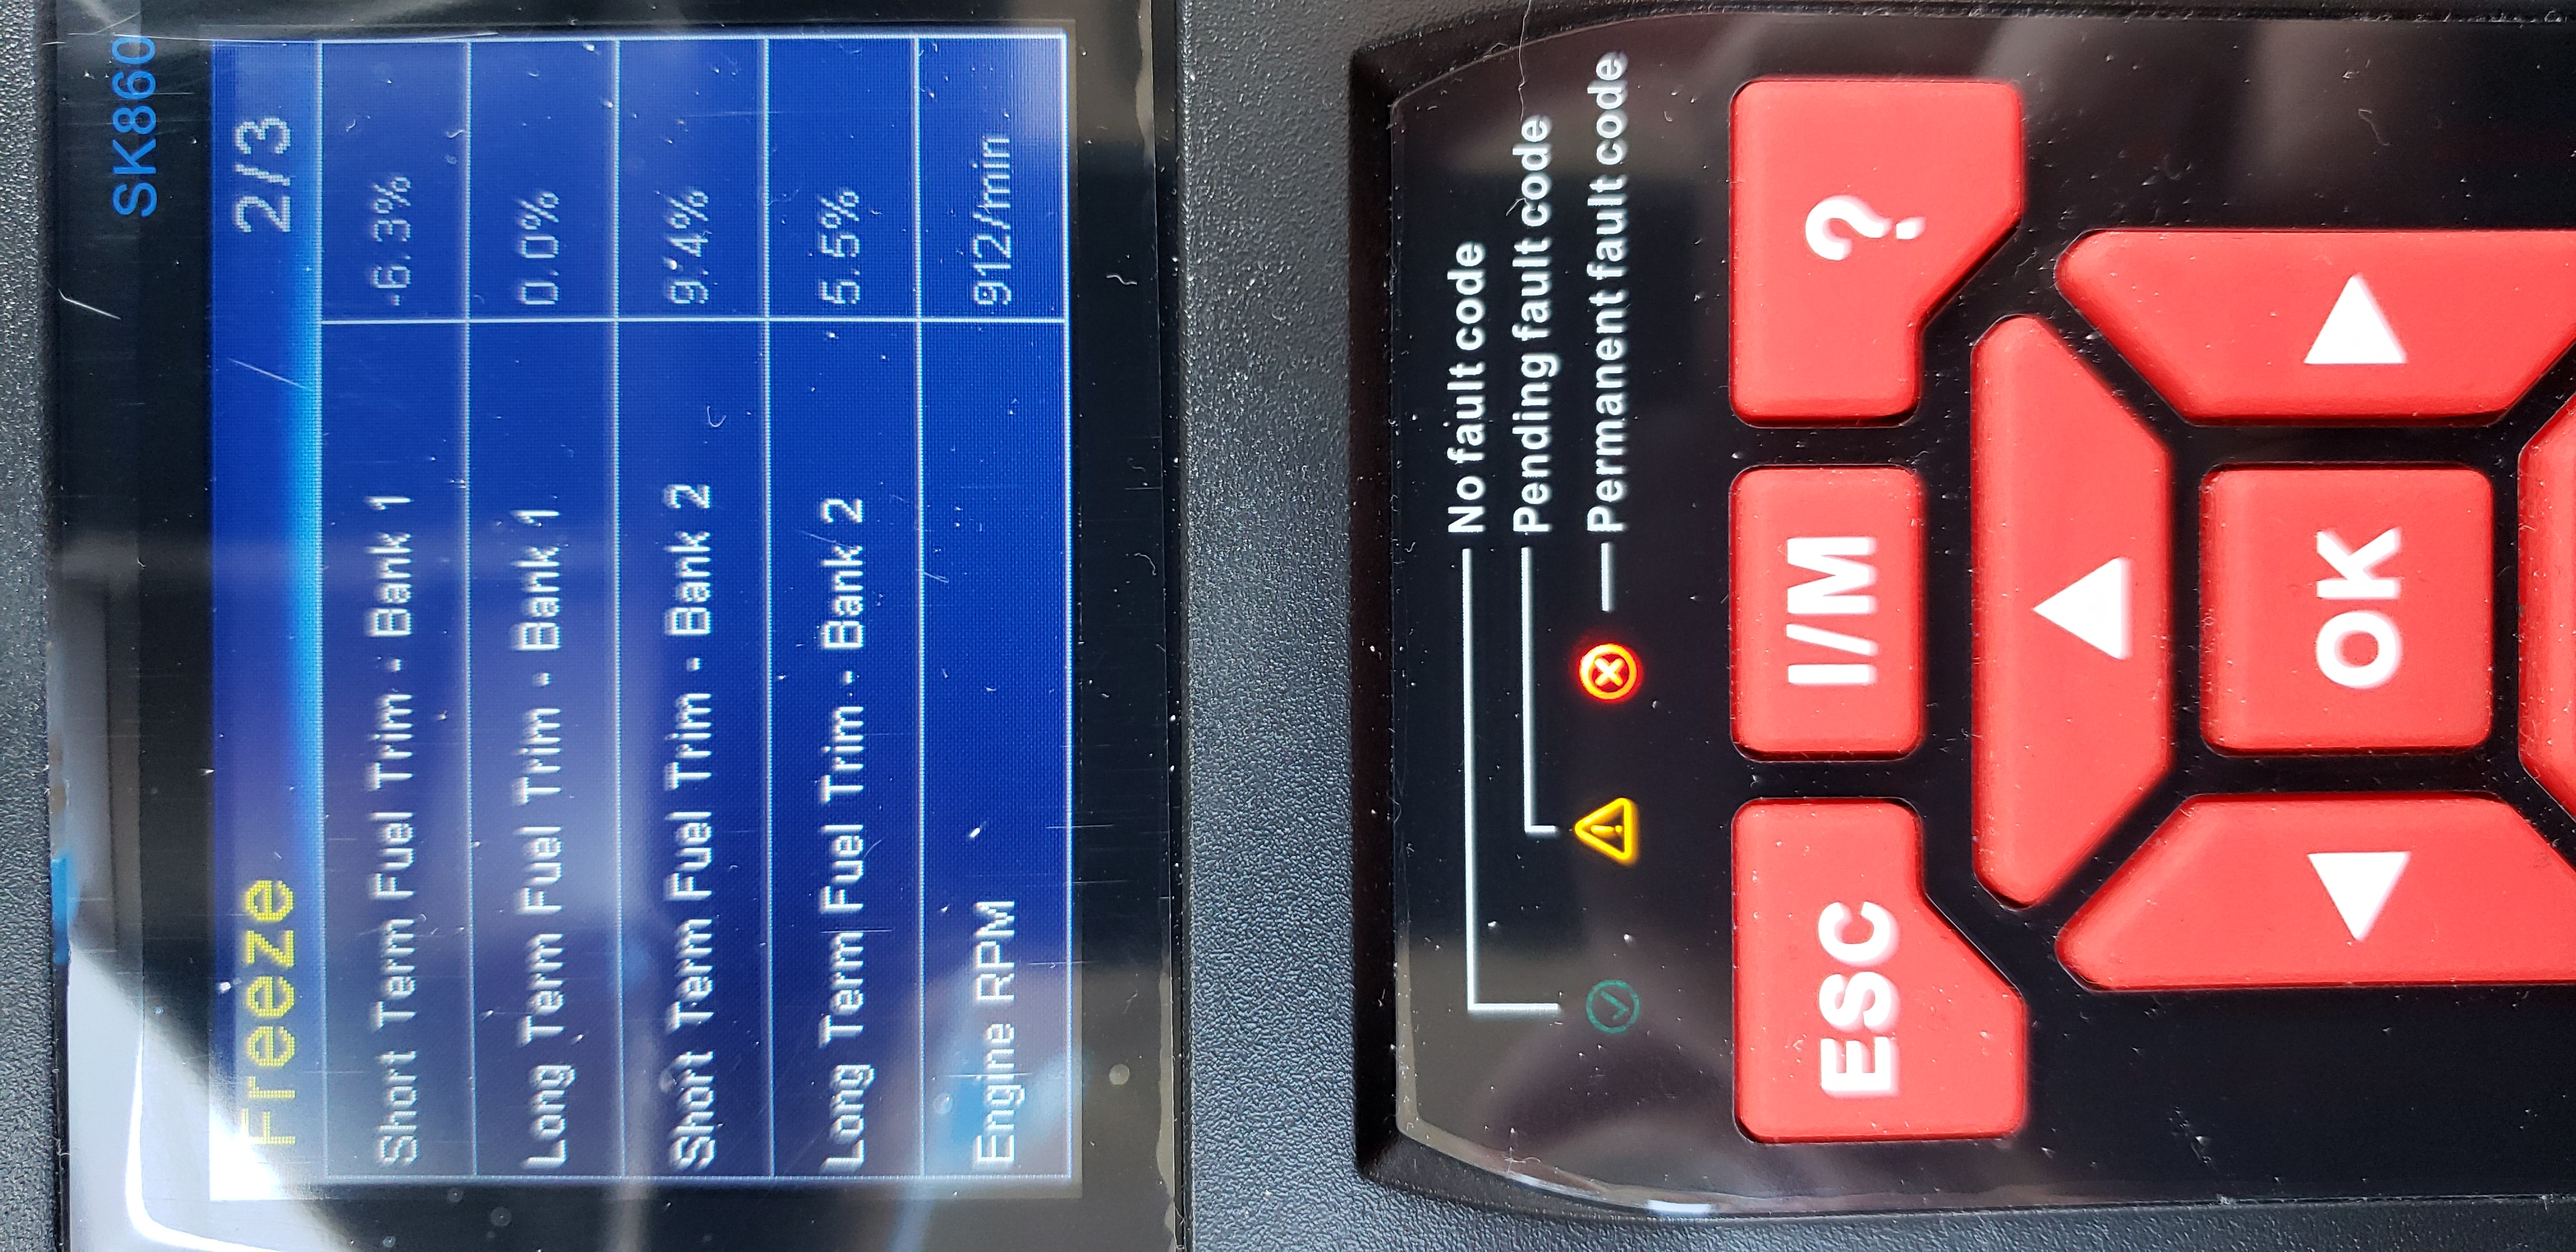 I have a 2004 Nissan Maxima with the SES codes for P1274